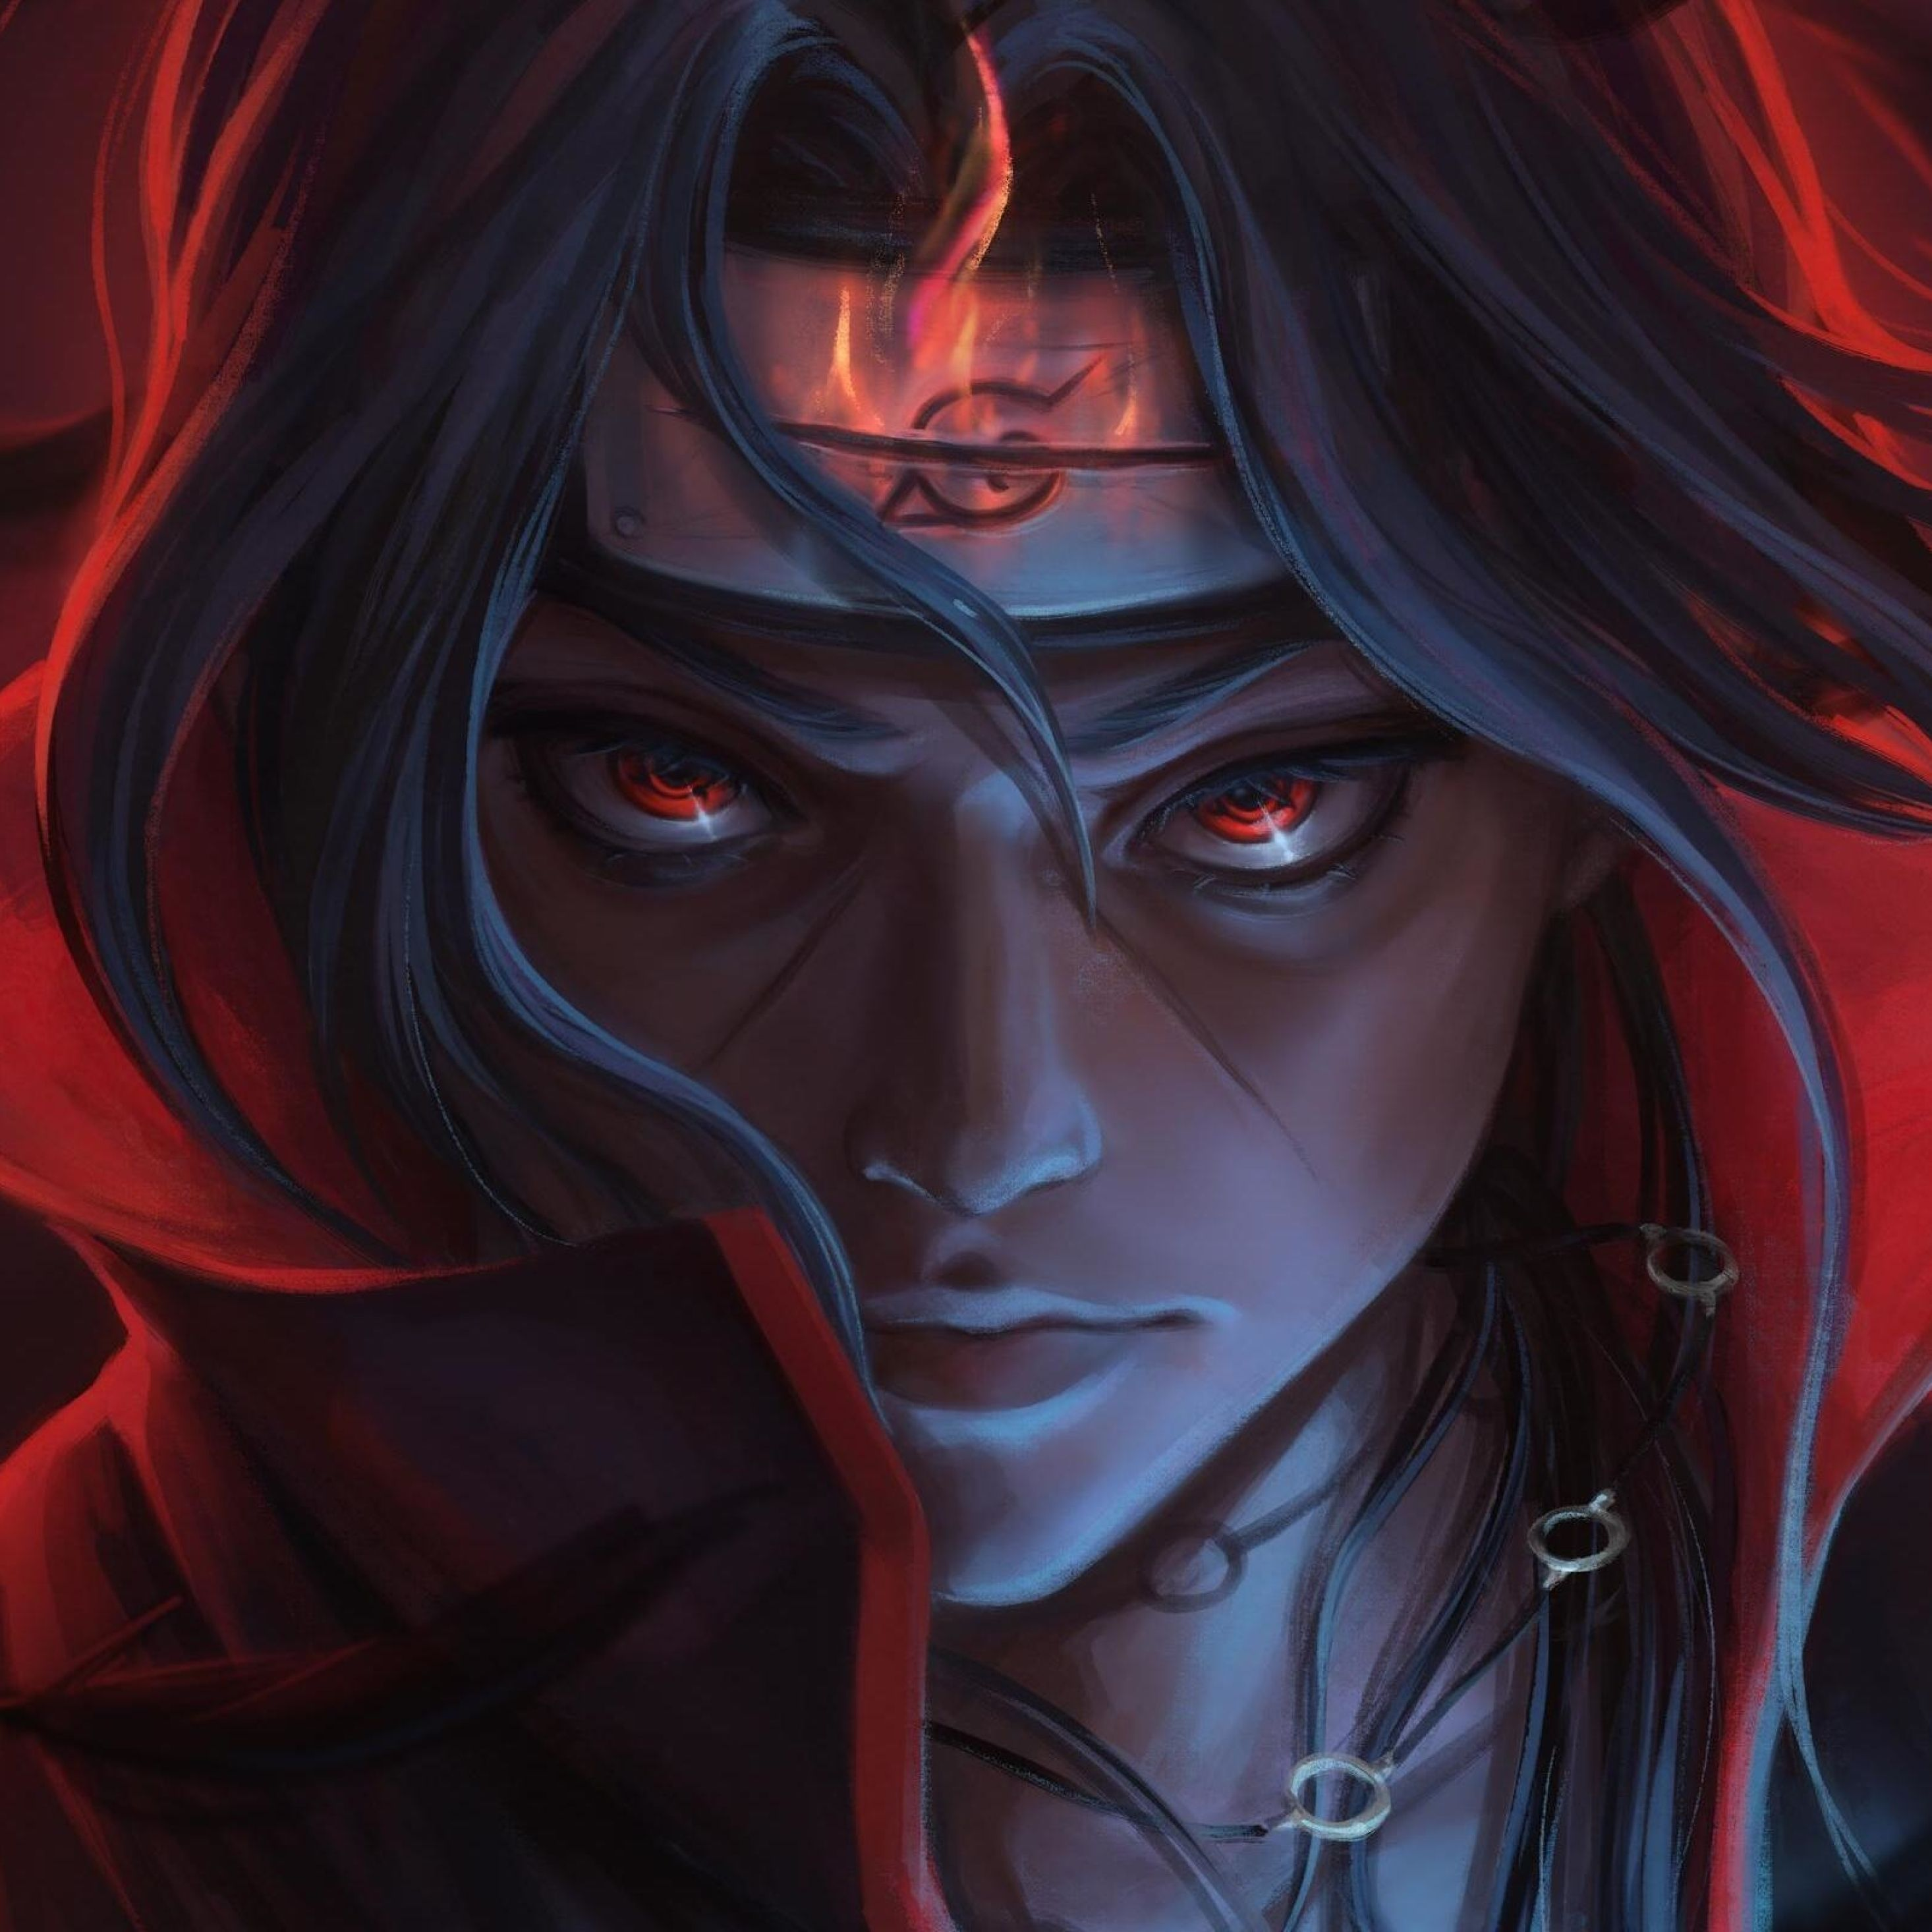 Checkout high quality 1536x2048 anime wallpapers for android, pc & mac, laptop, smartphones, desktop and tablets with different resolutions. 2932x2932 Cool Itachi Uchiha Naruto Art Ipad Pro Retina ...